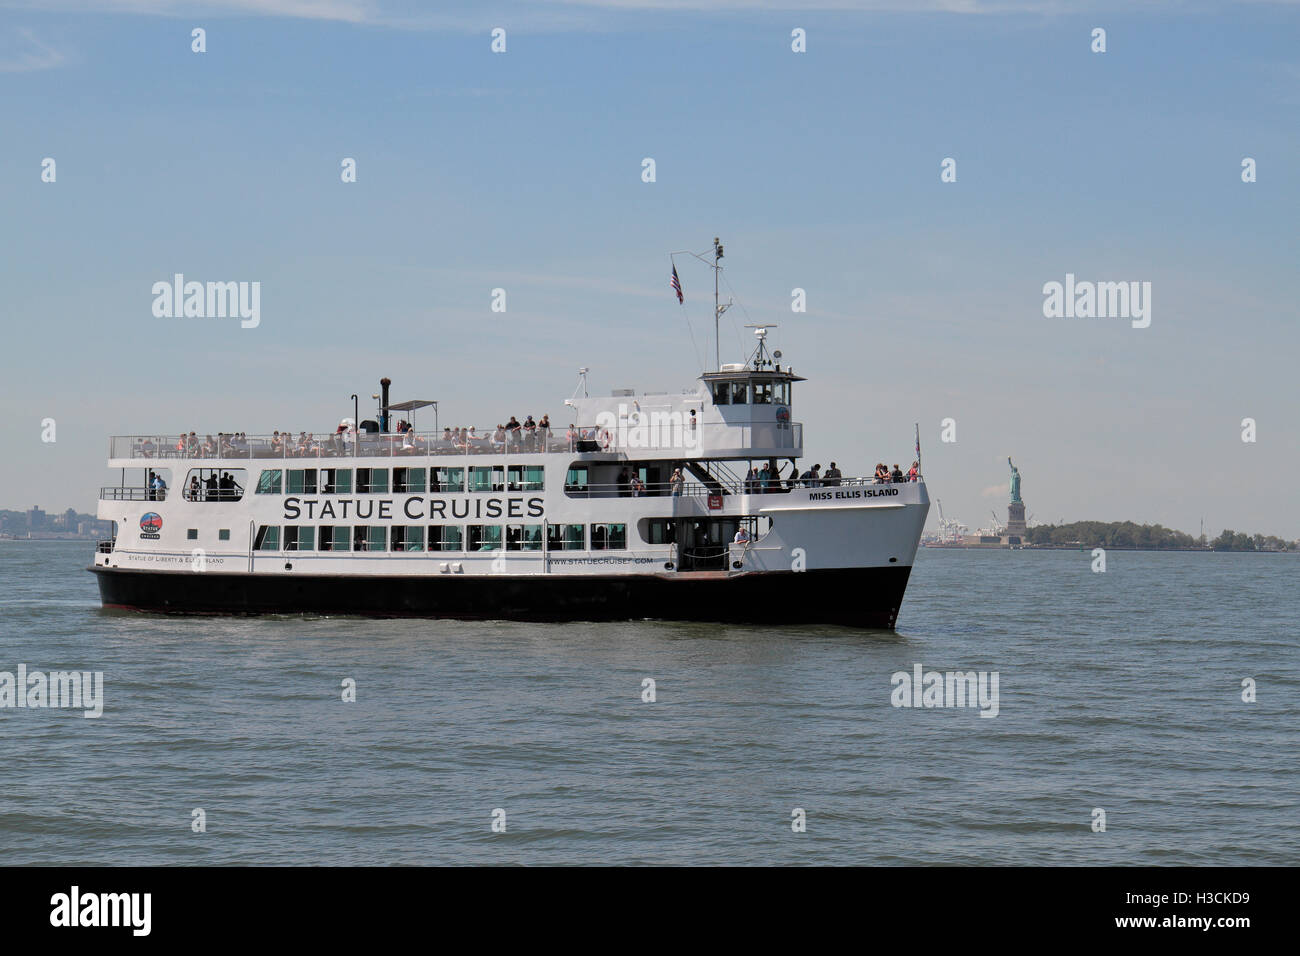 statue of liberty ferry stock photos & statue of liberty ferry stock